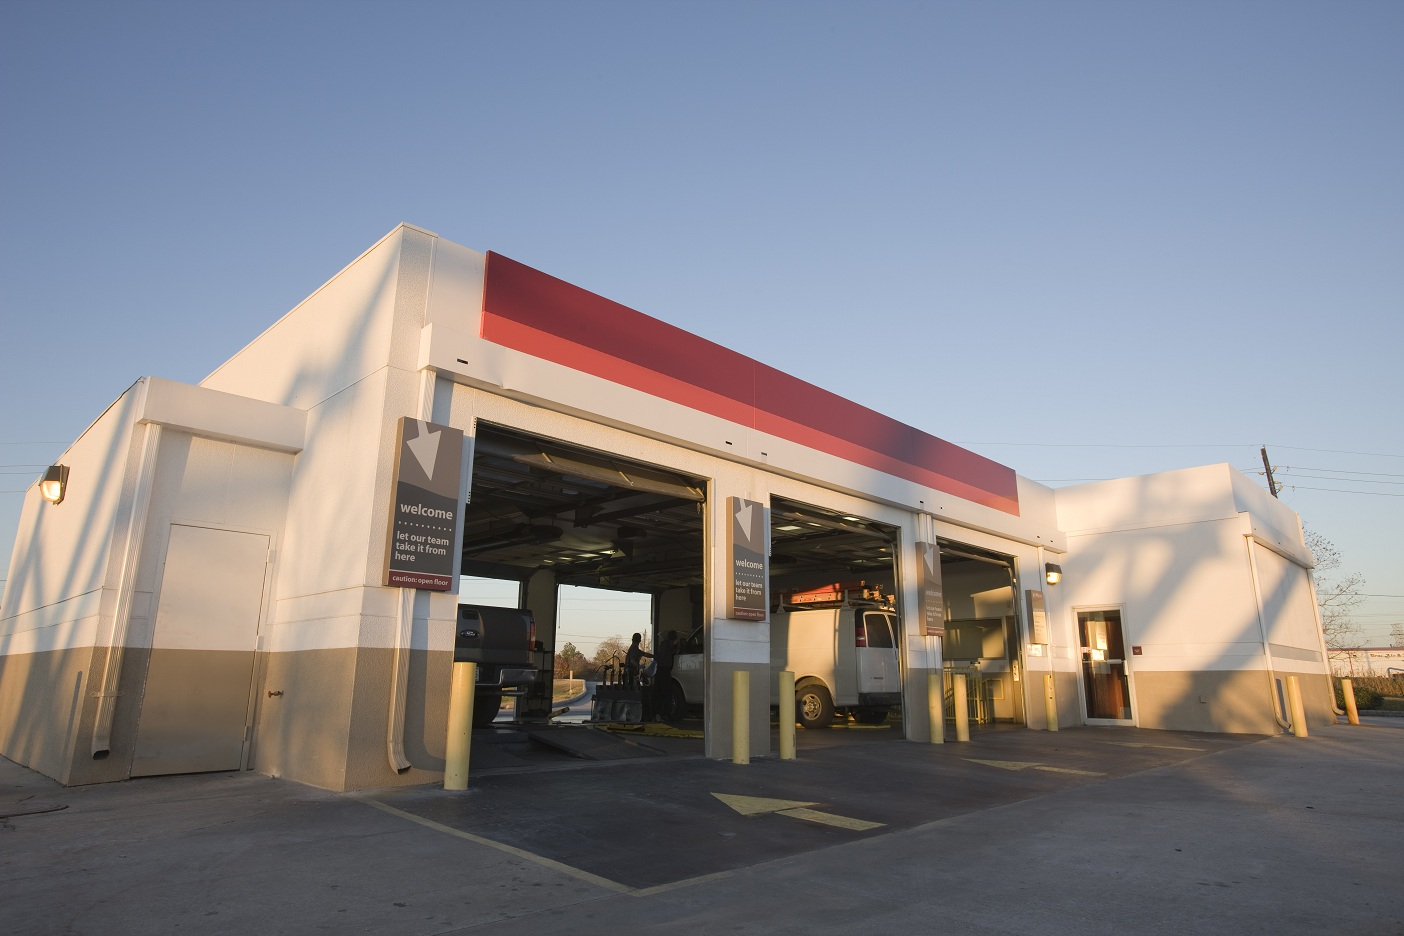 Jiffy Lube in CATHEDRAL CITY, CA